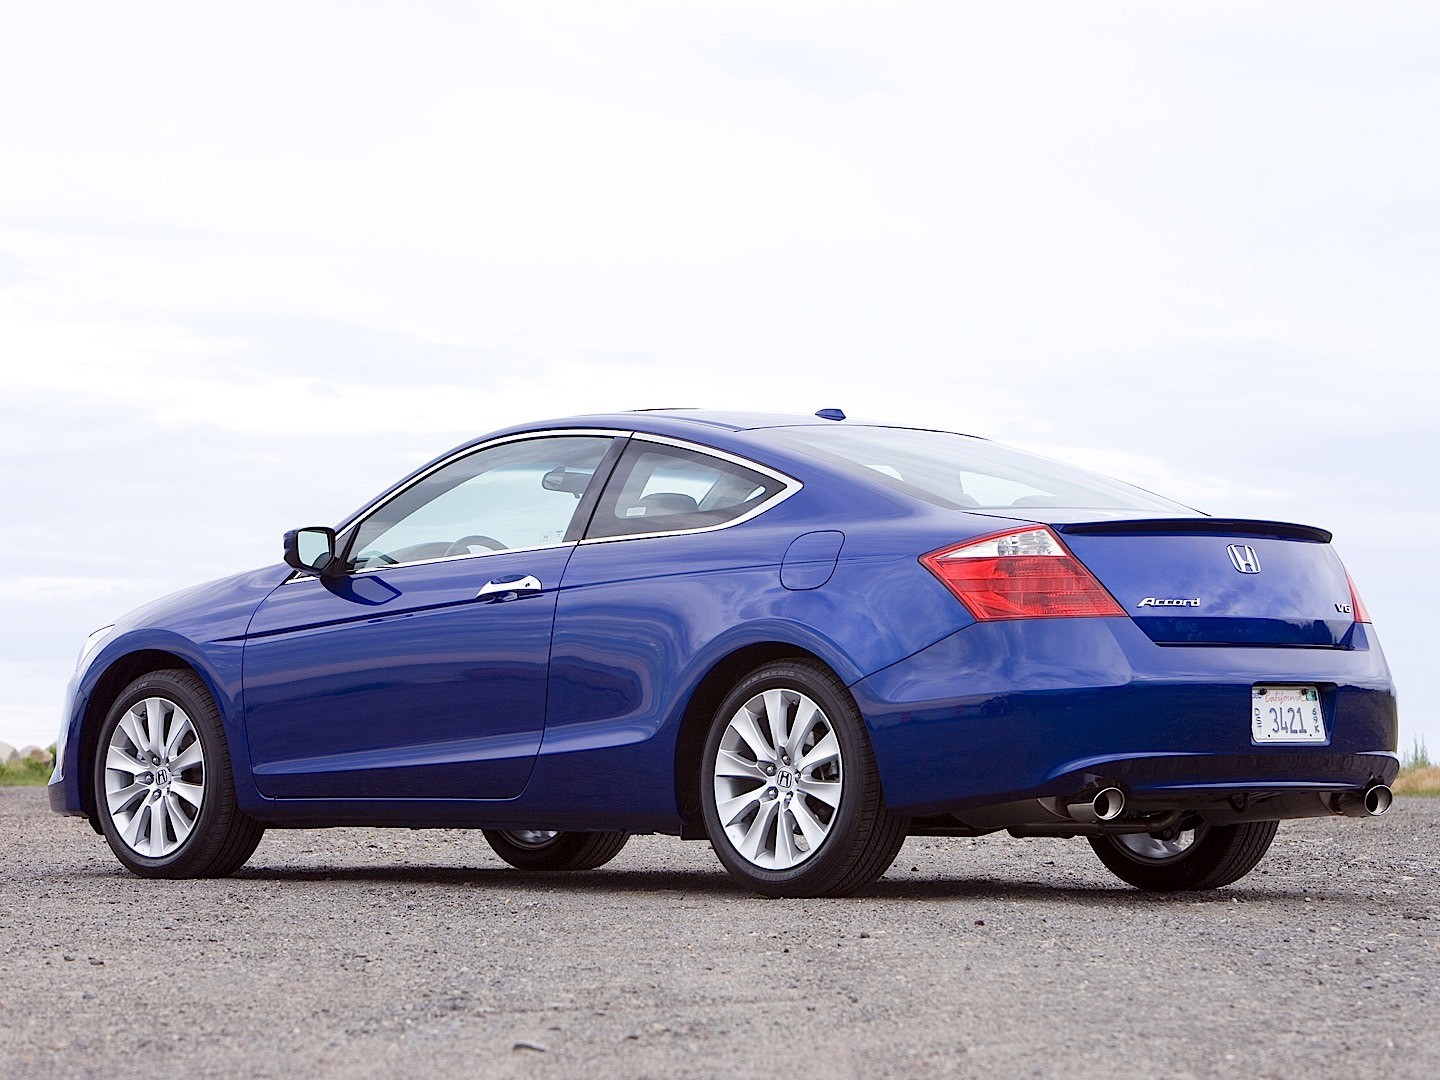 HONDA Accord Coupe US specs & photos - 2008, 2009, 2010, 2011, 2012, 2013, 2014, 2015, 2016 ...